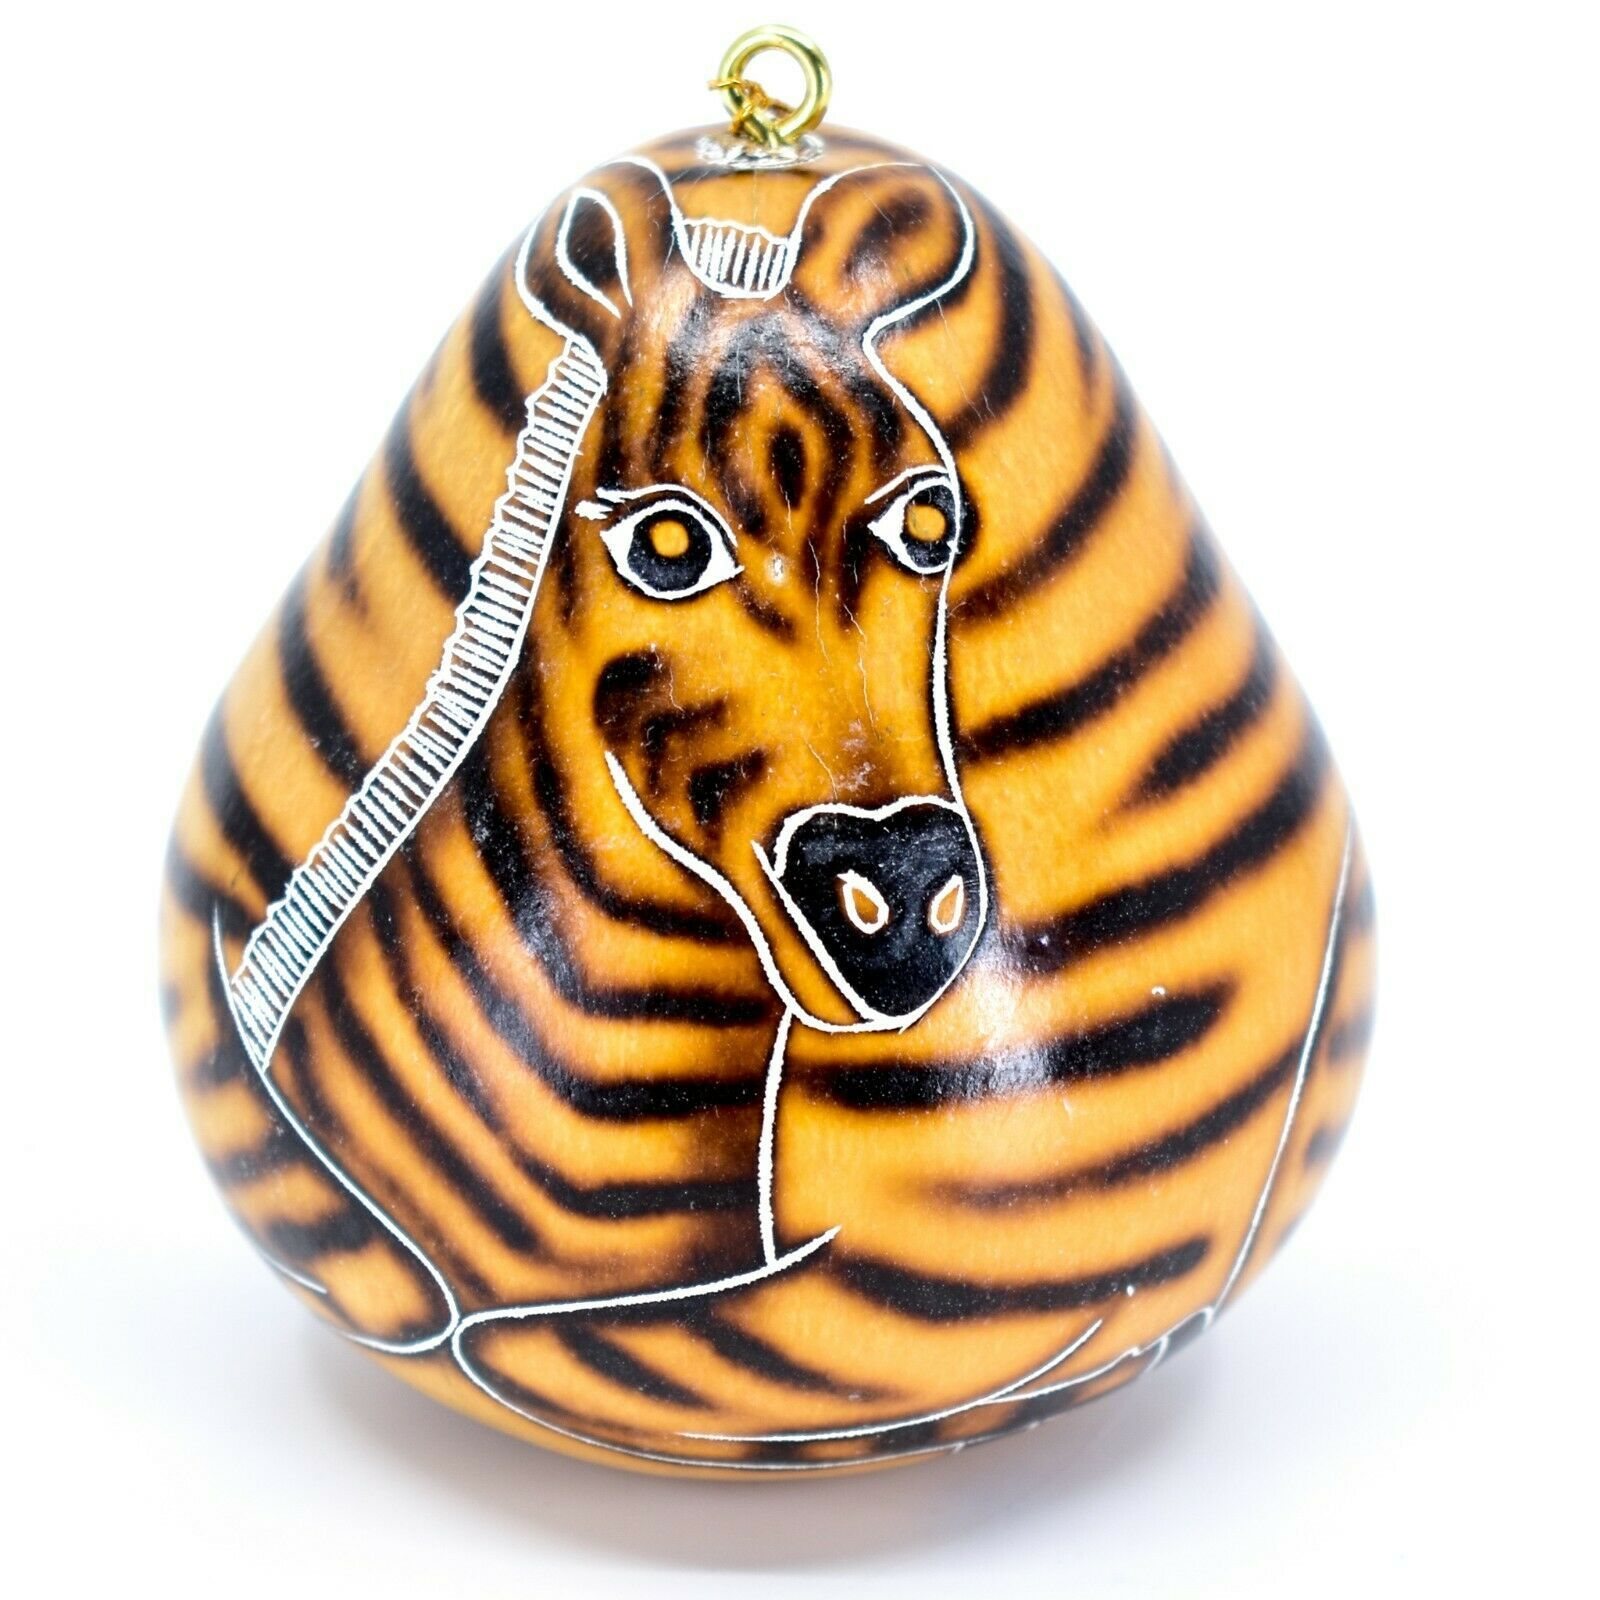 Handcrafted Carved Gourd Art Zebra Zoo Animal Ornament Made in Peru